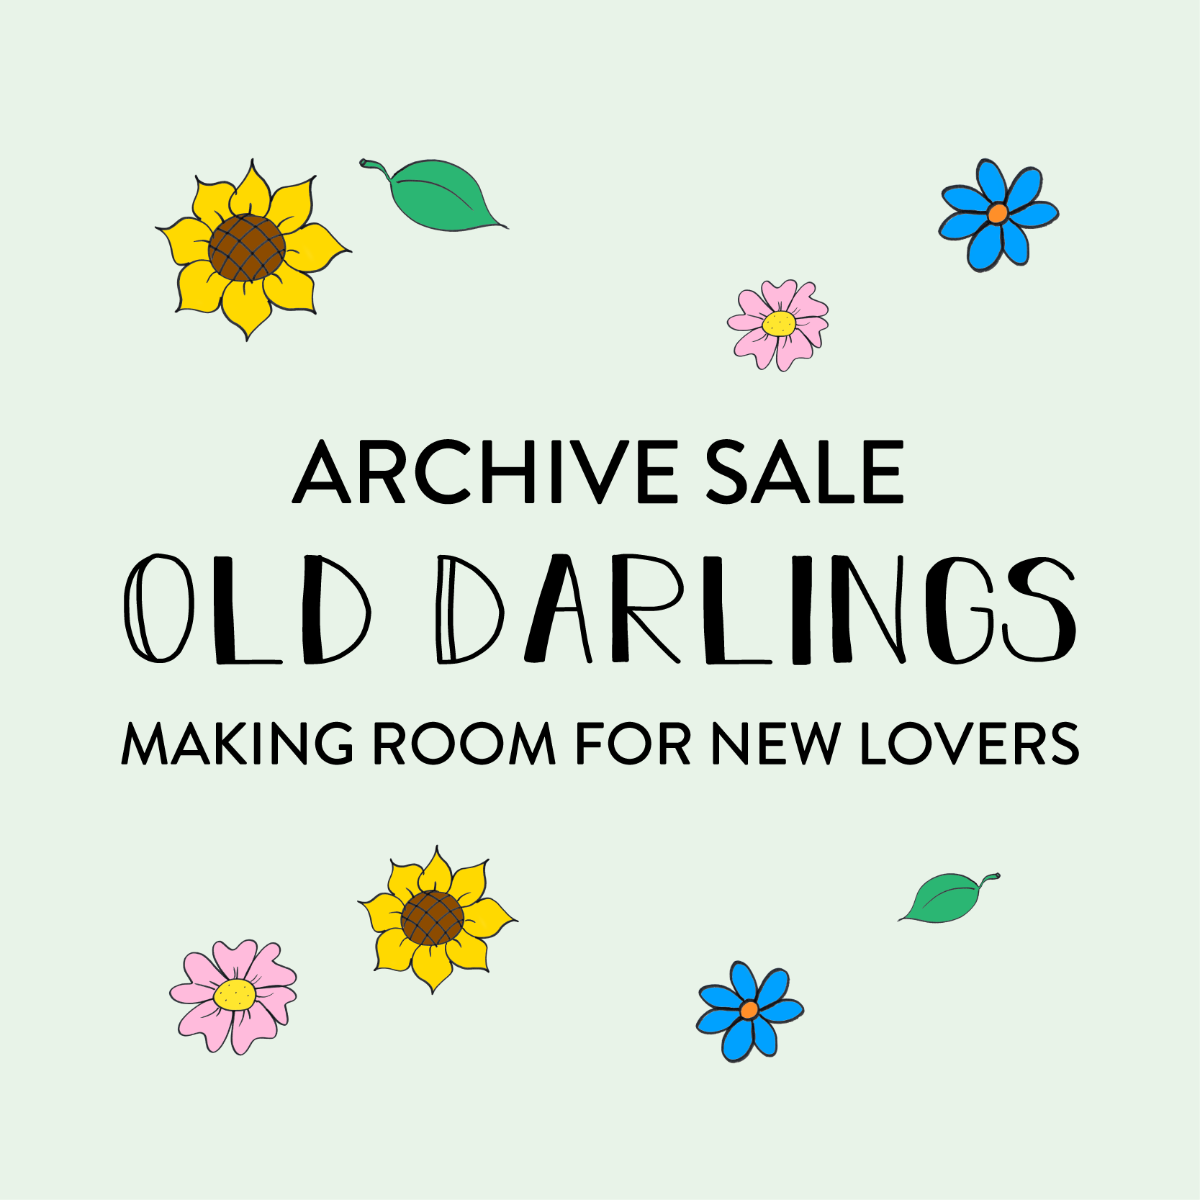 Old Darlings Archive Sale